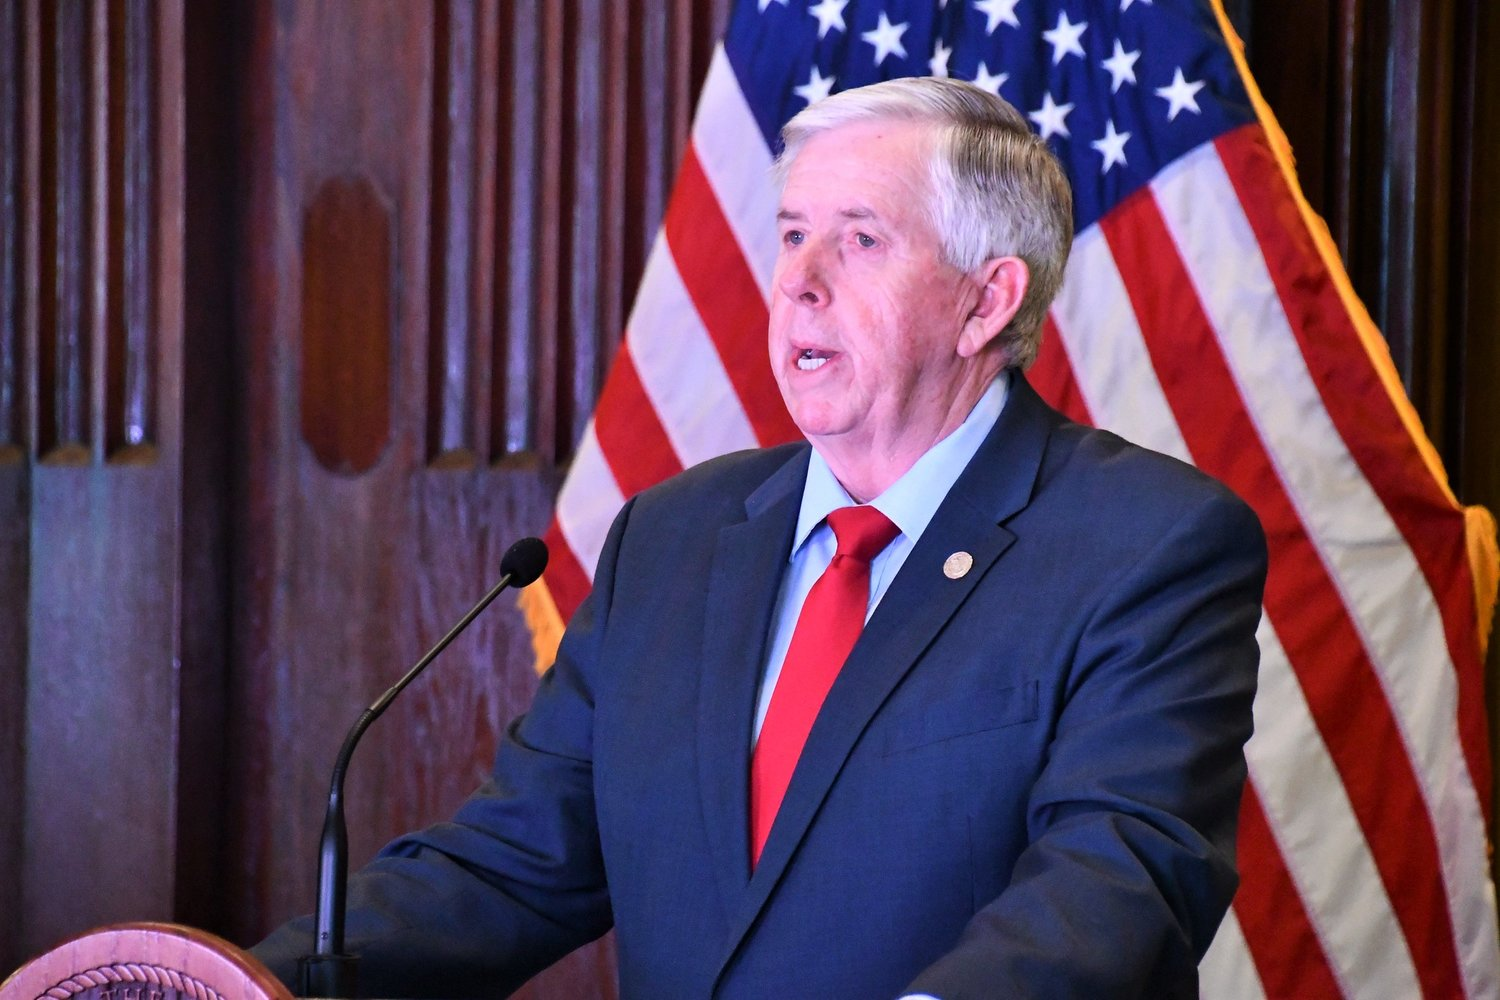 Gov. Mike Parson on Friday announces a statewide stay-at-home order.